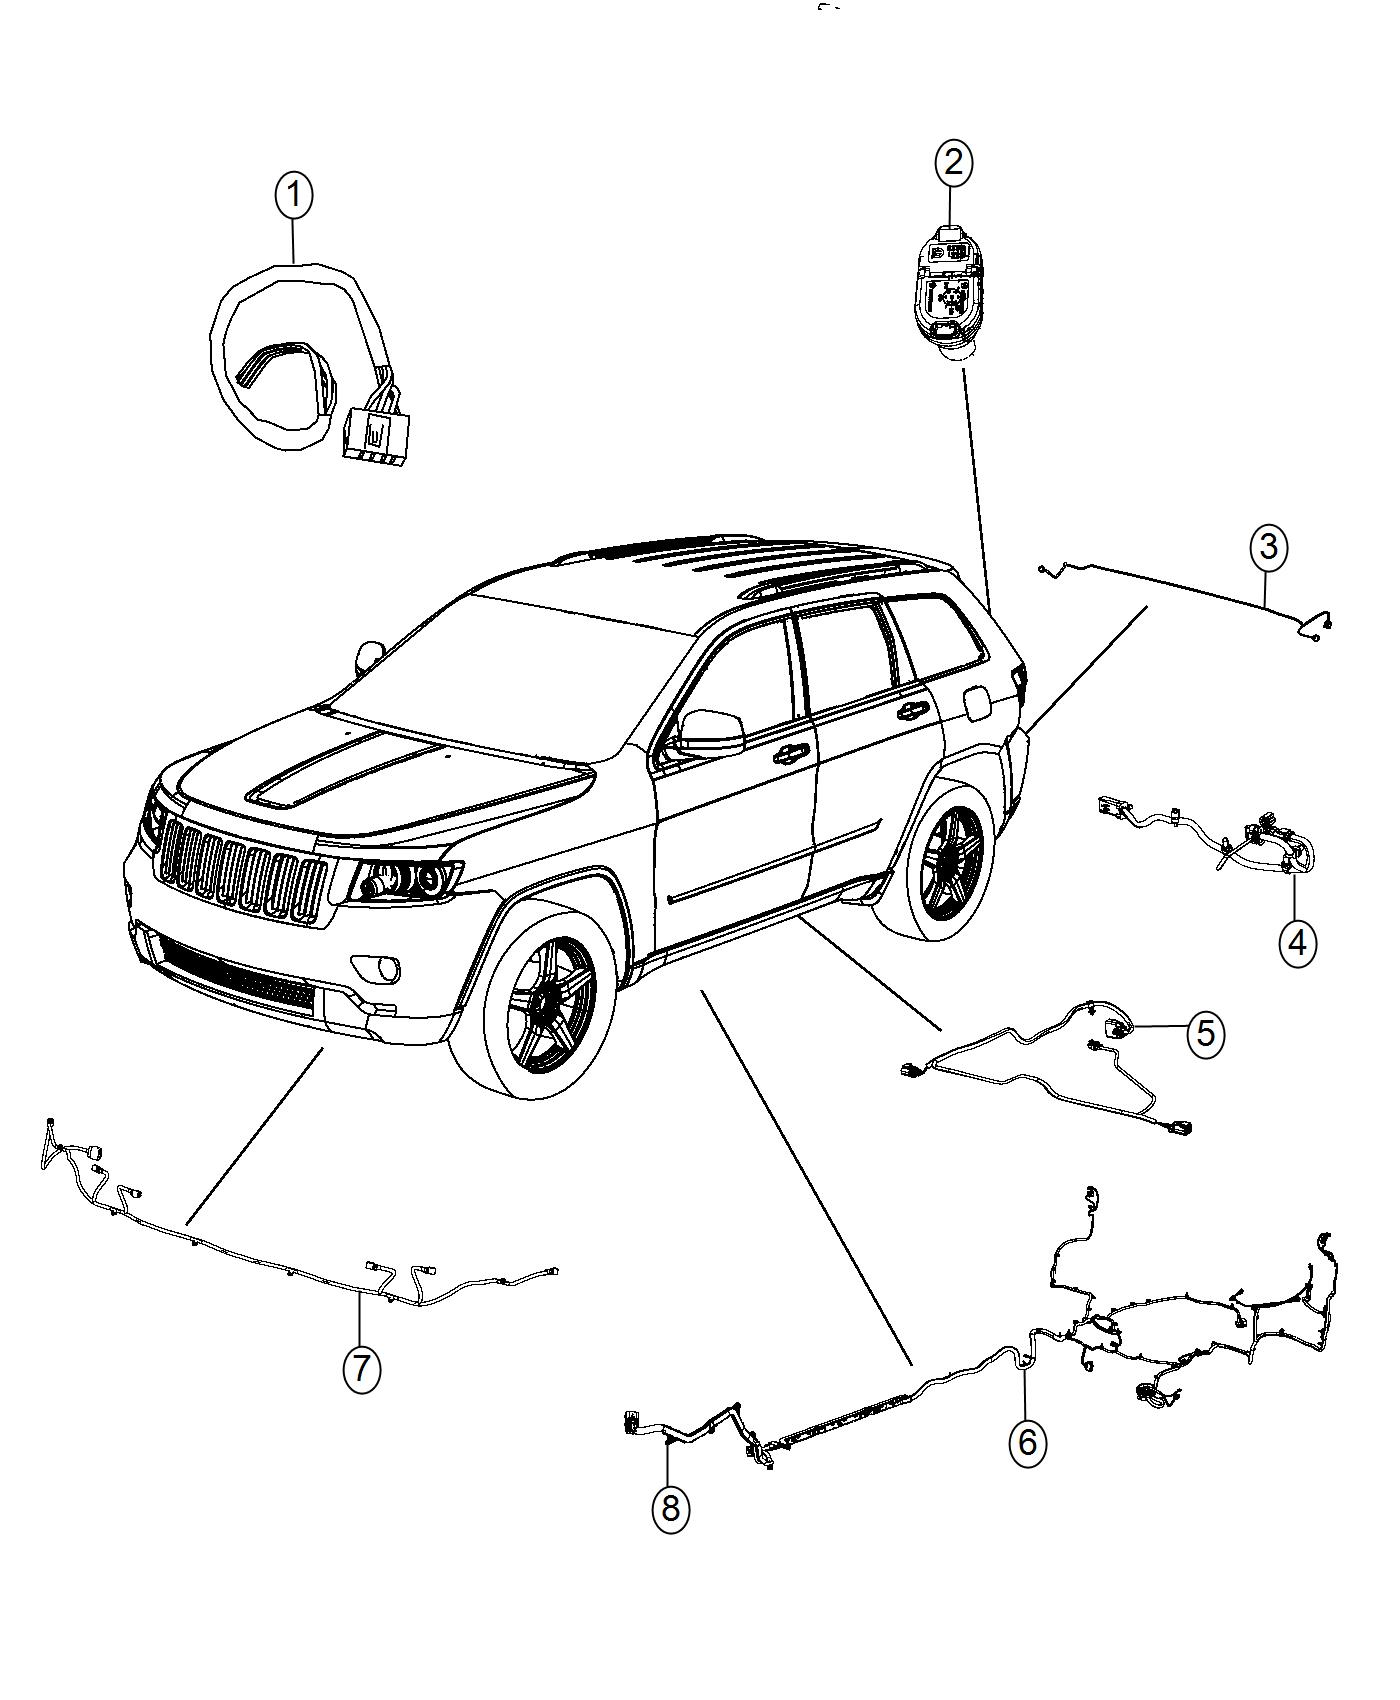 2016 Jeep Grand Cherokee Wiring. Jumper. Emissions, stage